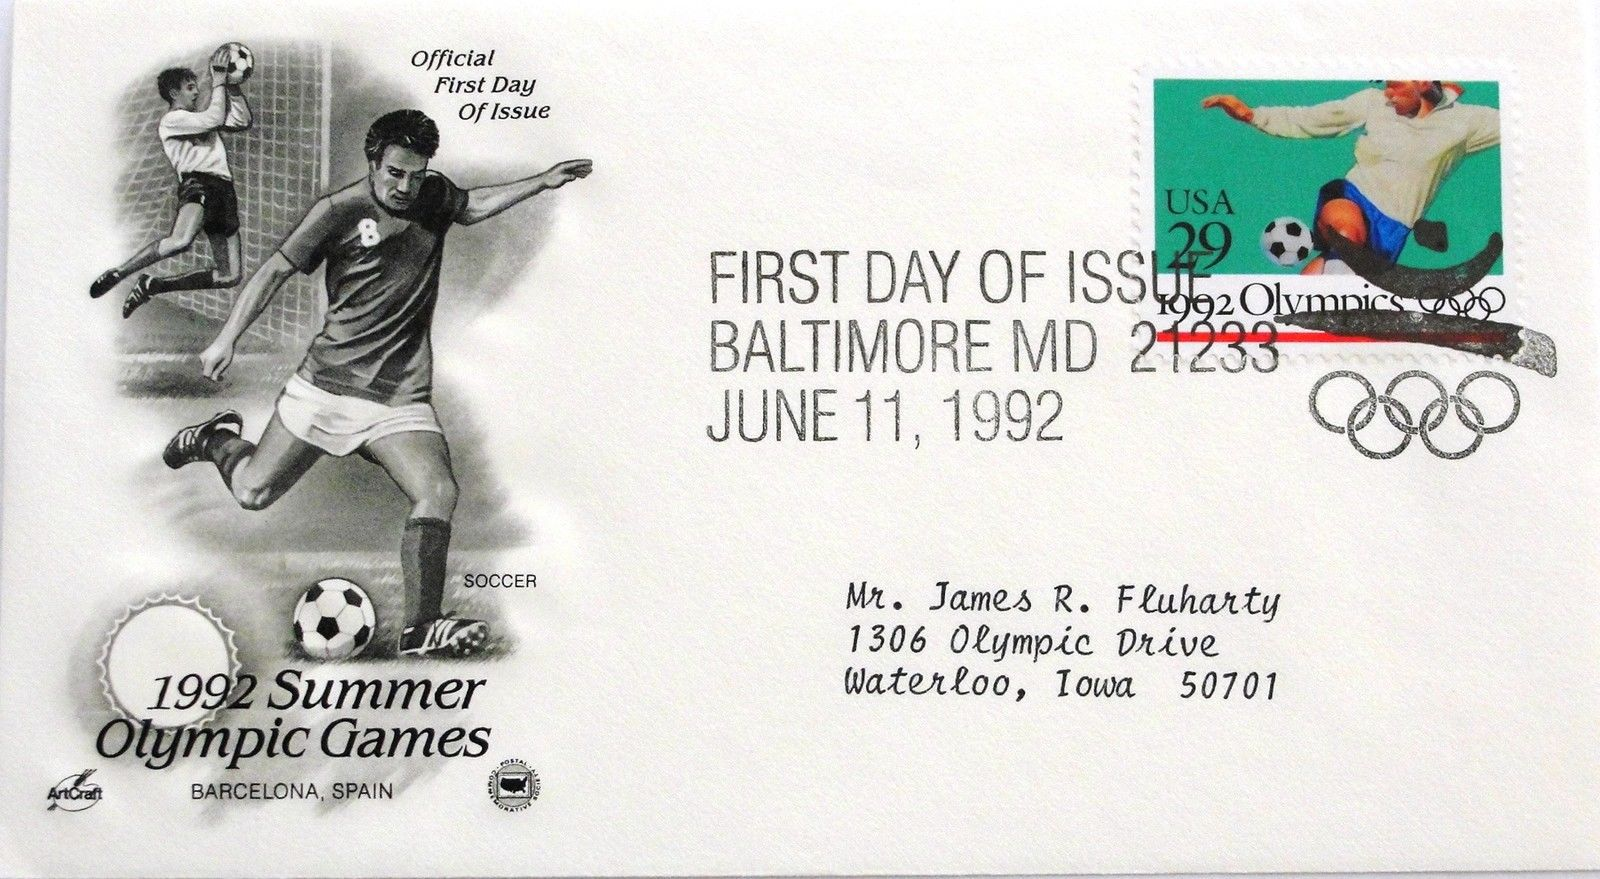 Jun. 11, 1992 First Day of Issue, Art Craft Cover, Summer Olympics Soccer #16